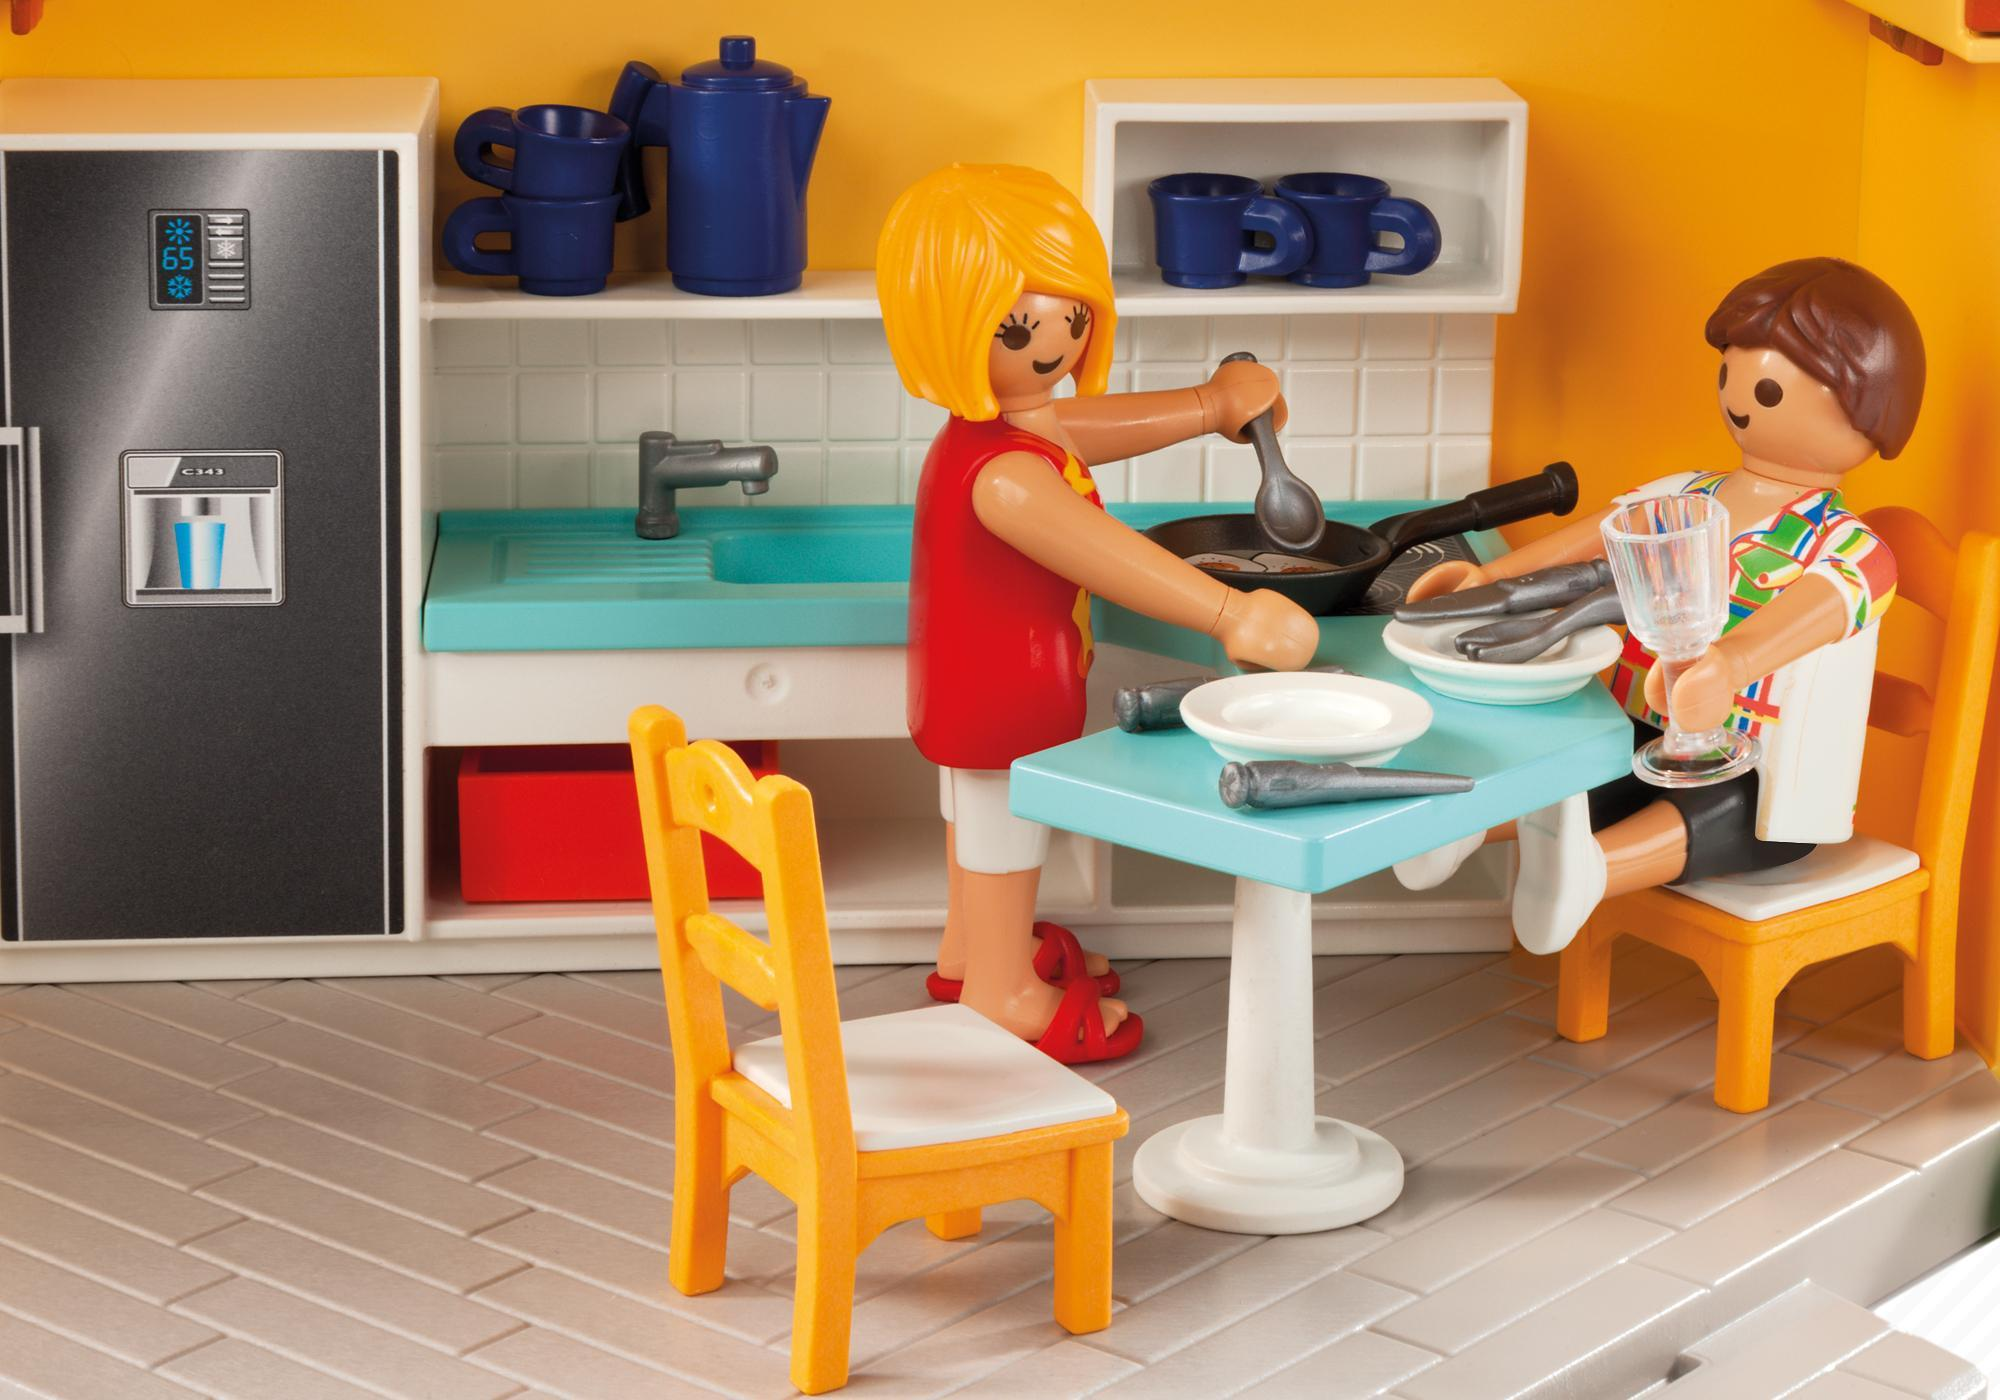 http://media.playmobil.com/i/playmobil/6020_product_extra1